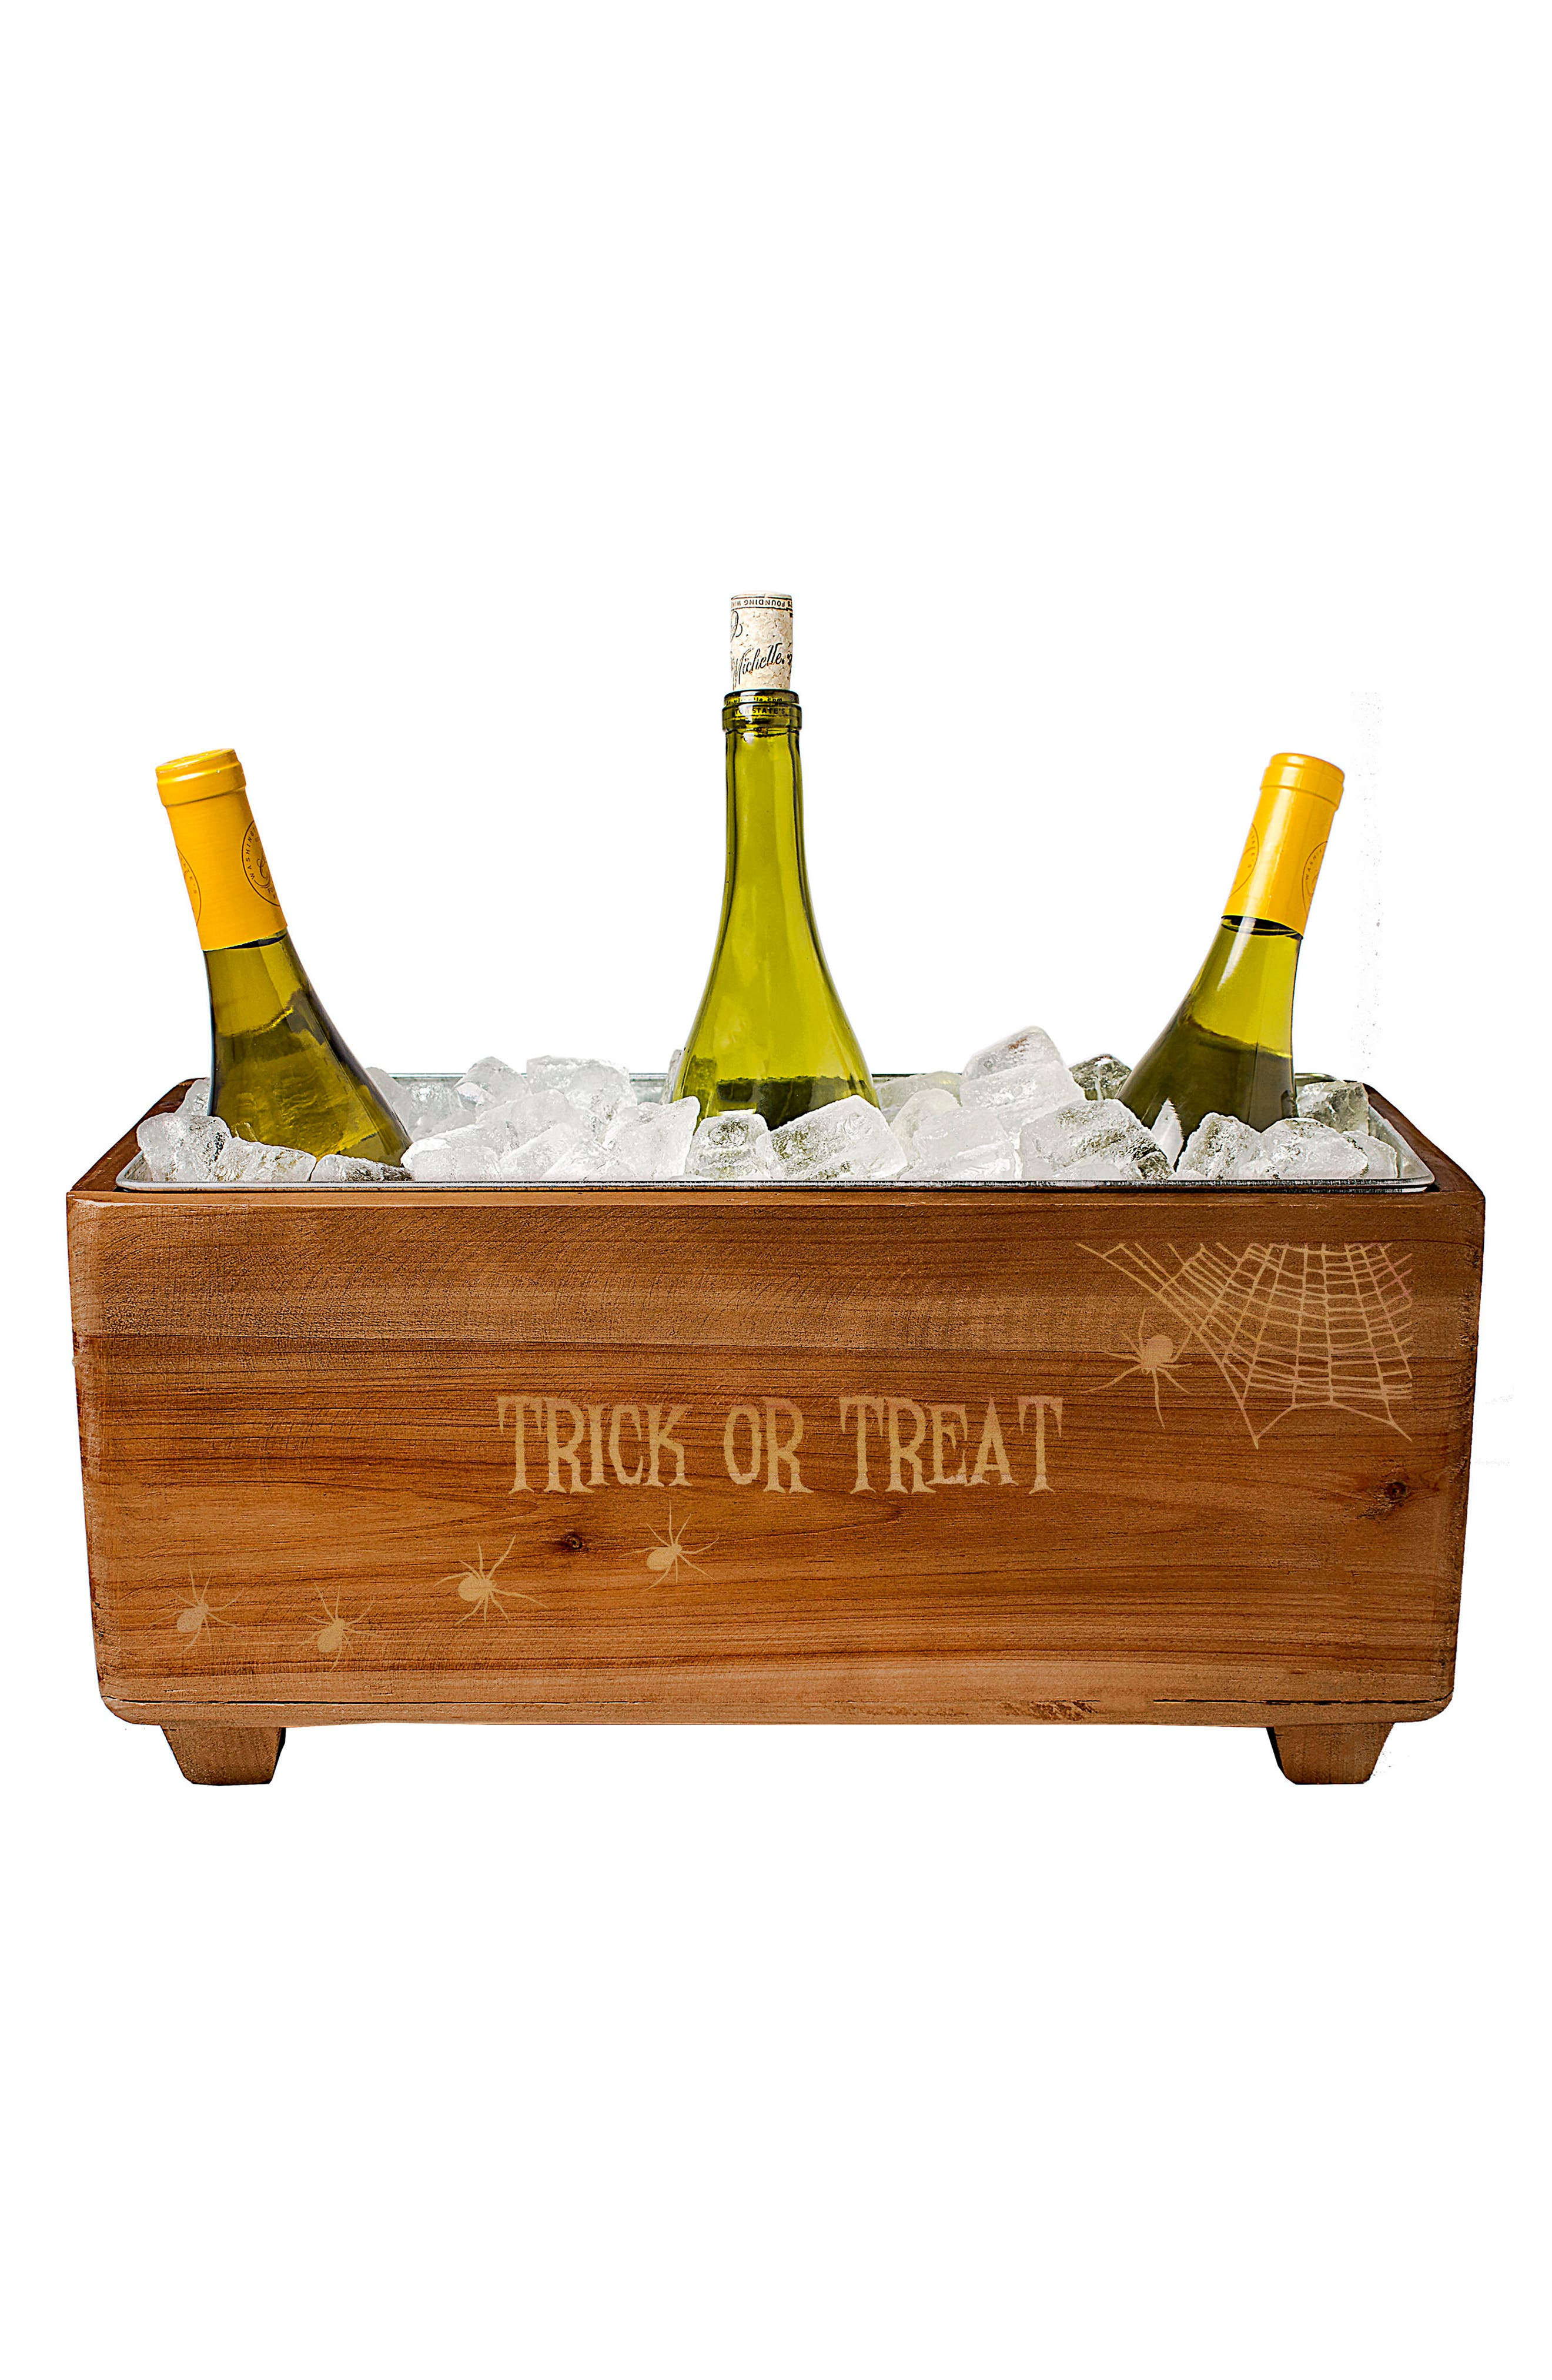 Trick or Treat Wood Wine Trough,                             Alternate thumbnail 2, color,                             Brown